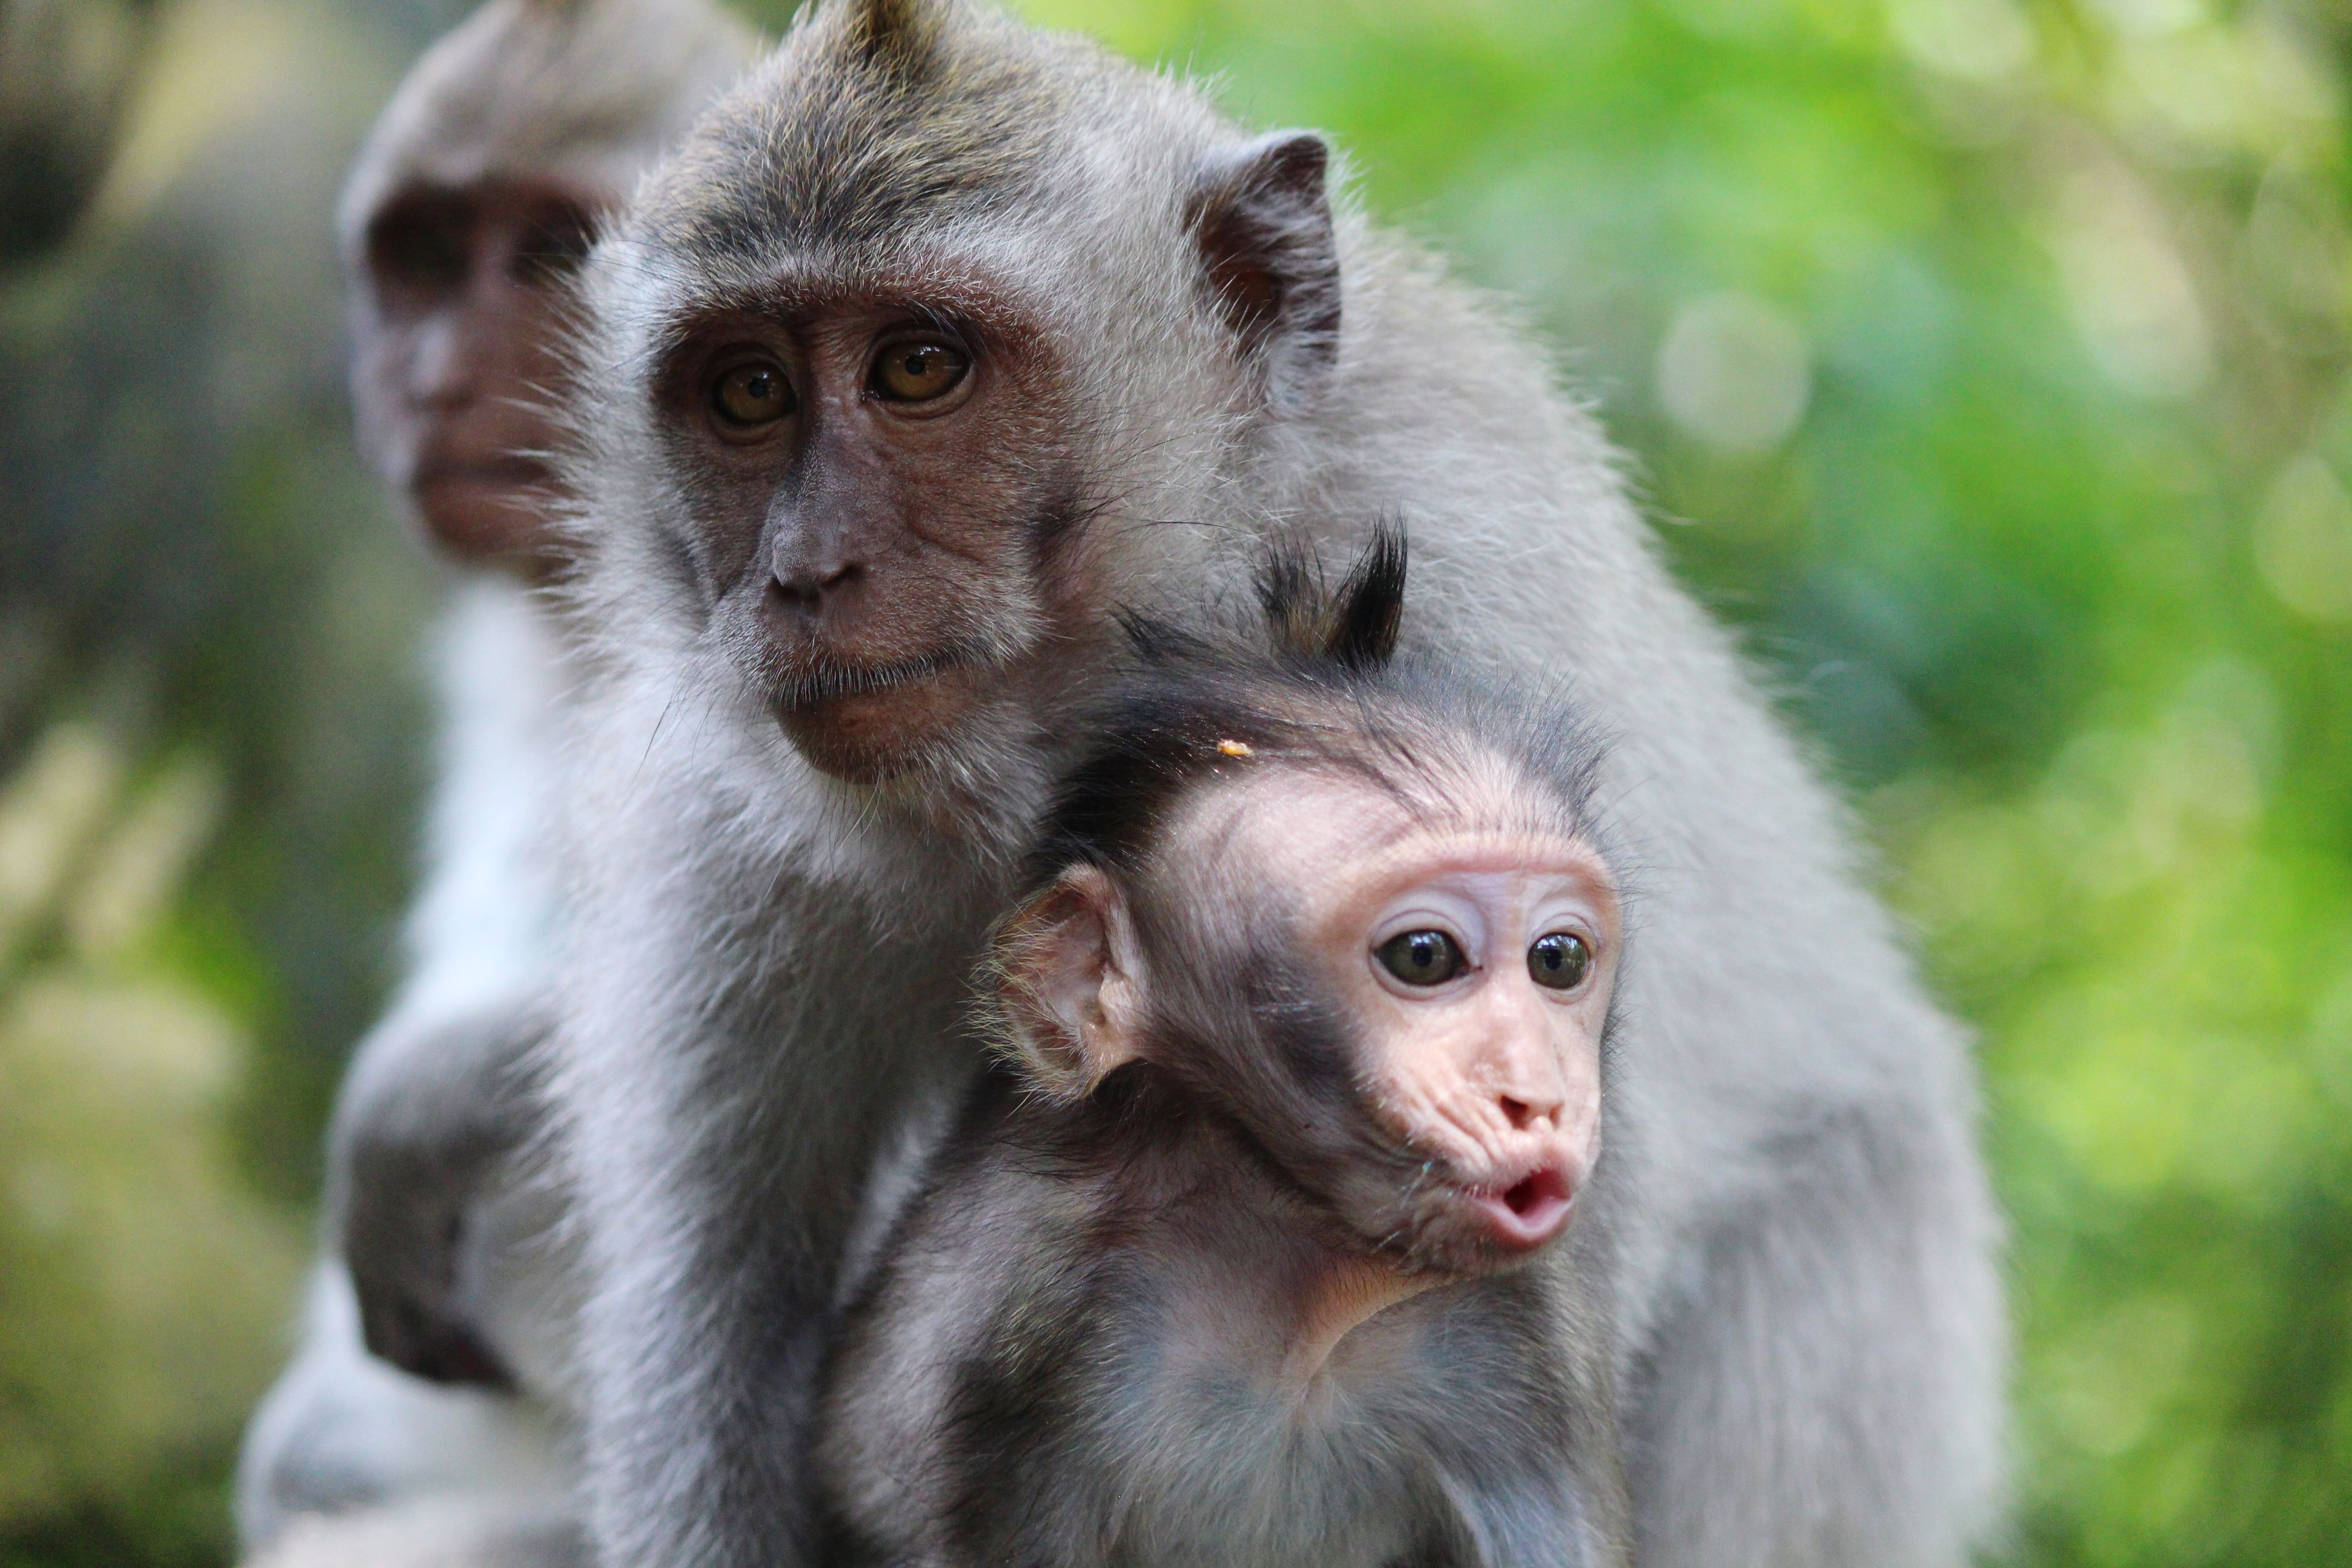 monkey, infant, focus on foreground, two animals, animals in the wild, young animal, animal themes, animal family, mammal, togetherness, primate, animal wildlife, outdoors, day, nature, looking at camera, close-up, portrait